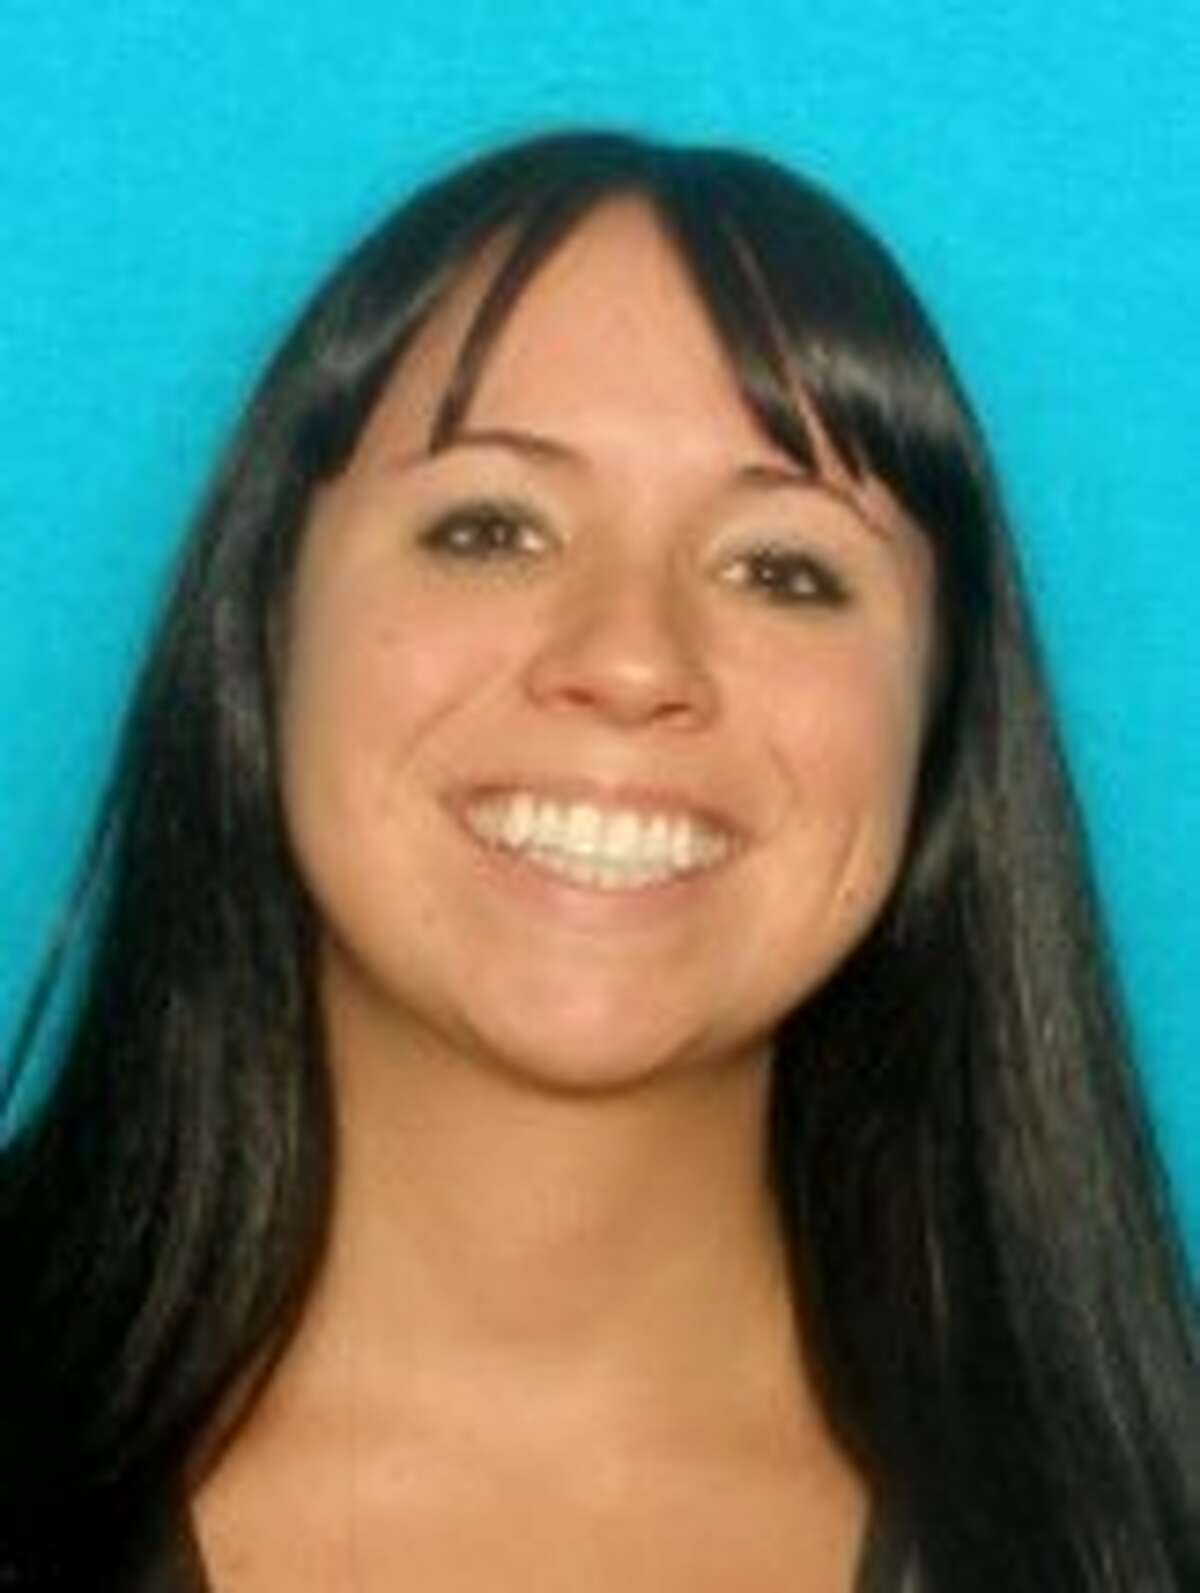 Allison Chapman Kempe, 41, was last seen Friday night leaving a restaurant in the 6300 block of FM 1463 in Katy, officials say.